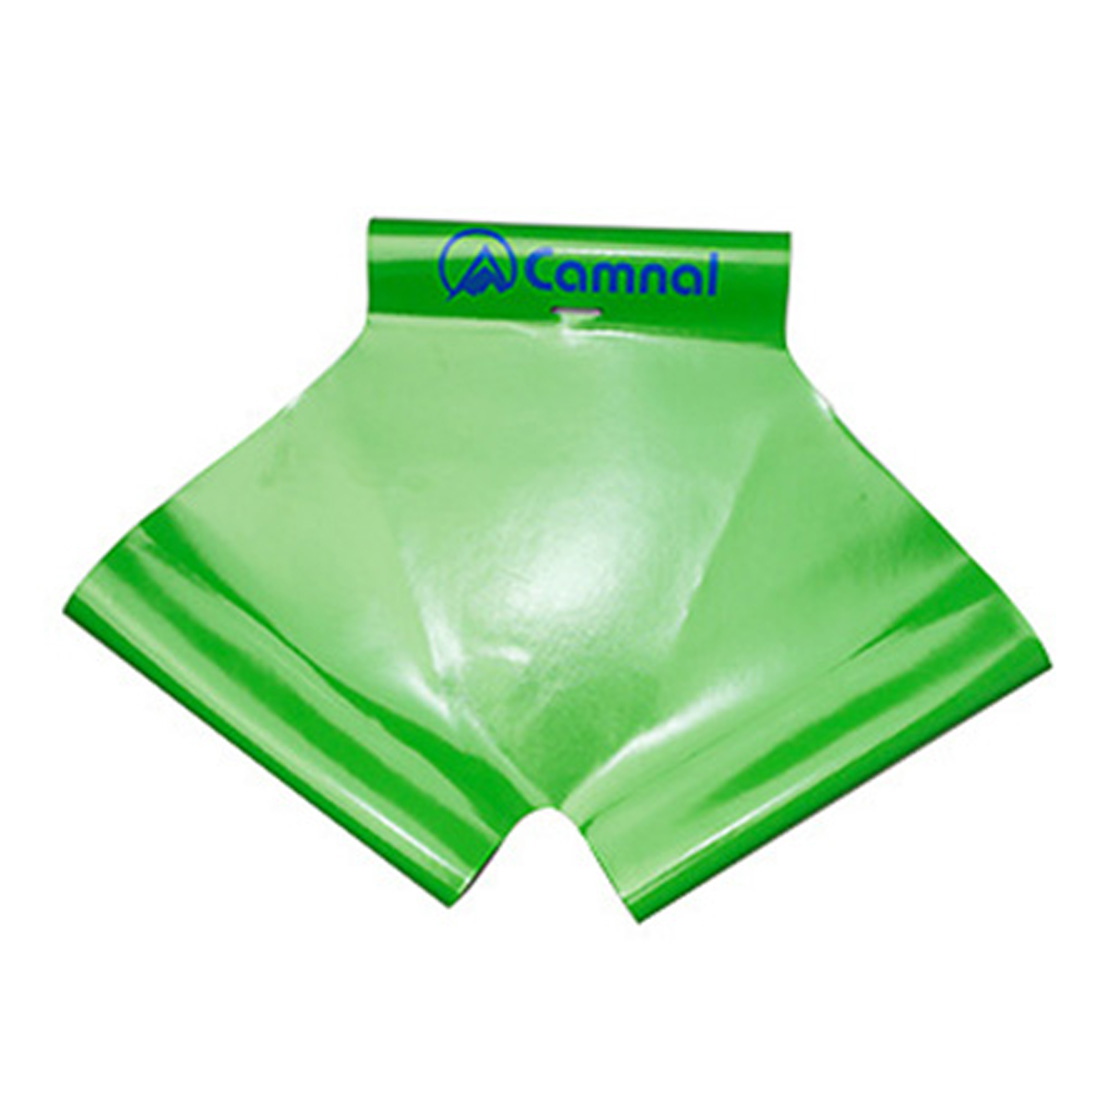 Covers Butt Seat Harness Wear-resisting PVC Rappelling Swimming Jumping